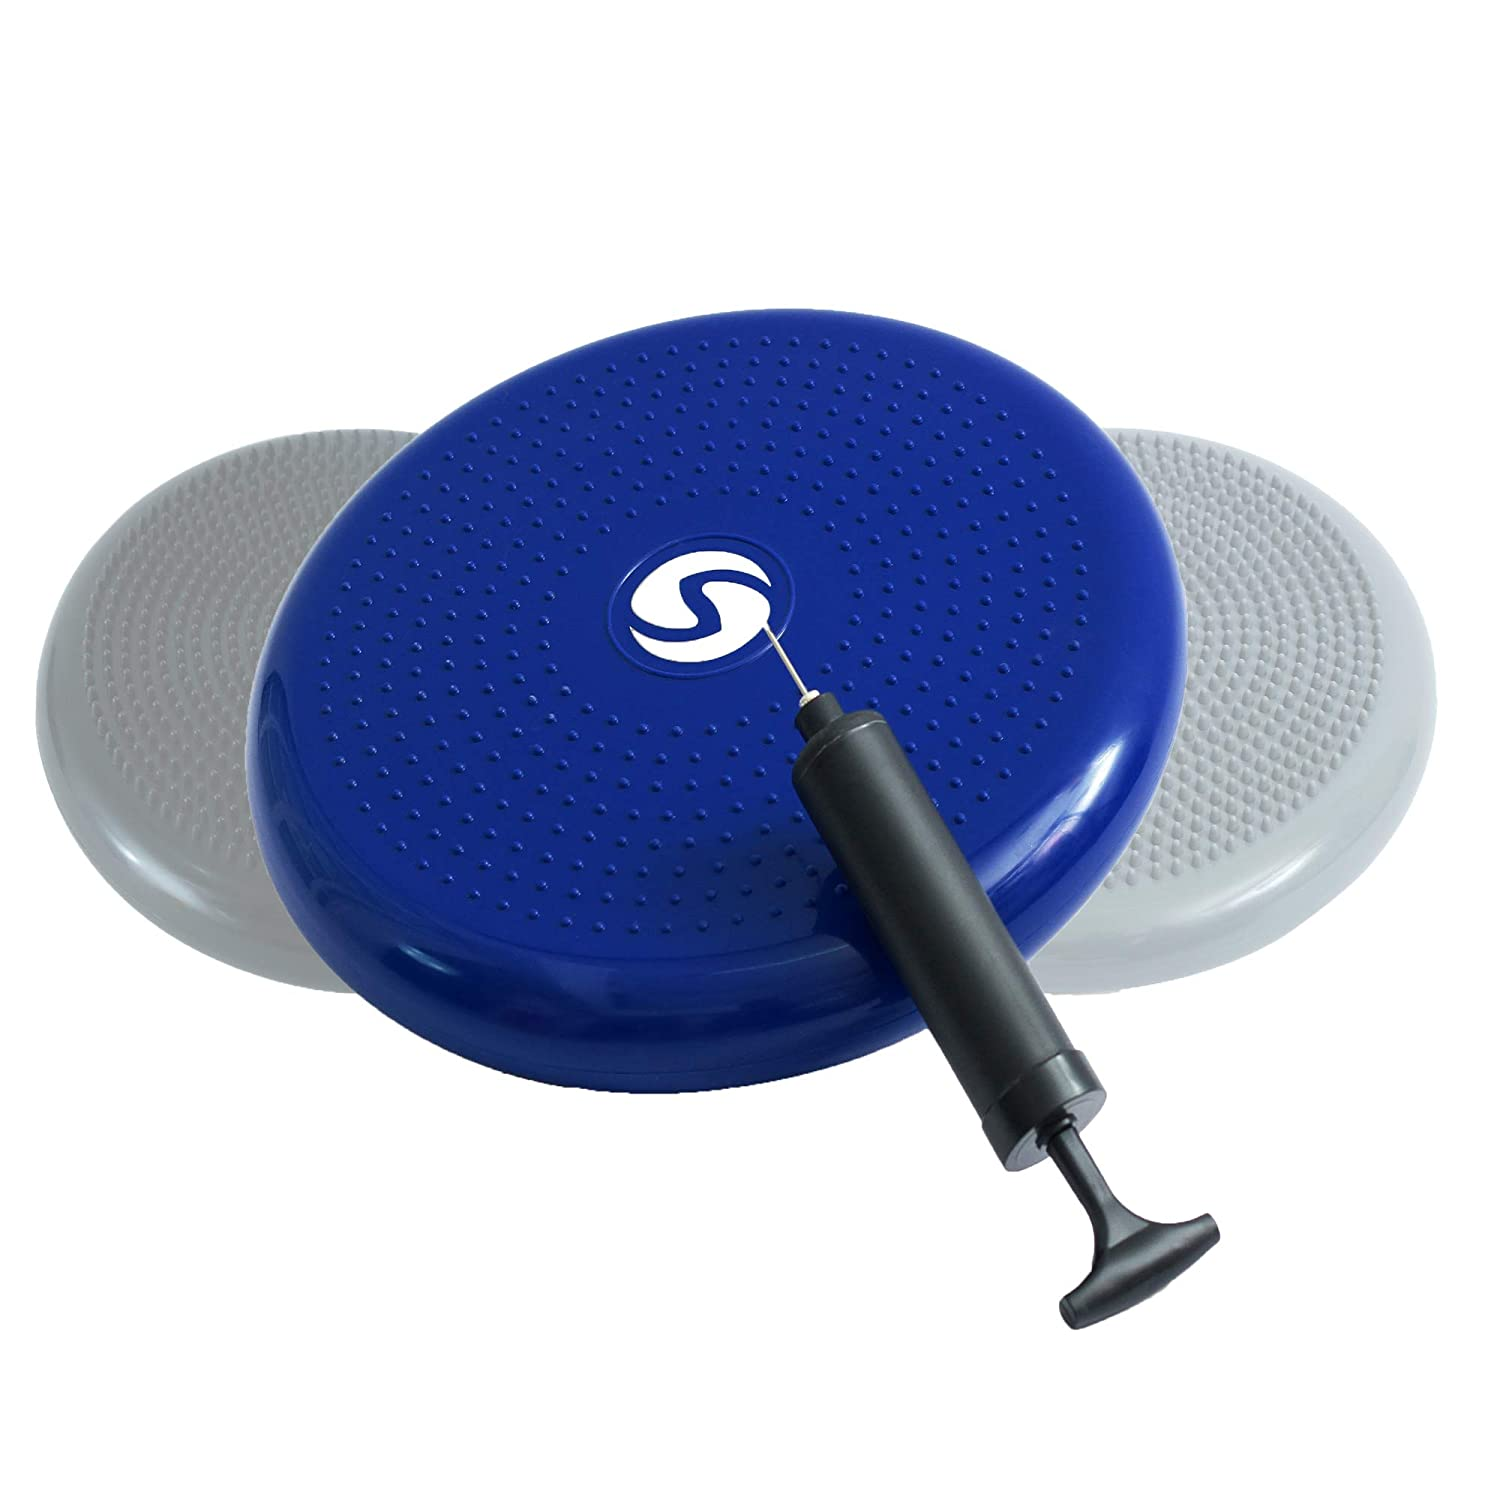 Comfortable ergonomic balance cushion with pump 33 cm round garden, bench for fitness or outdoors orthopaedic air pad also appropriate for children